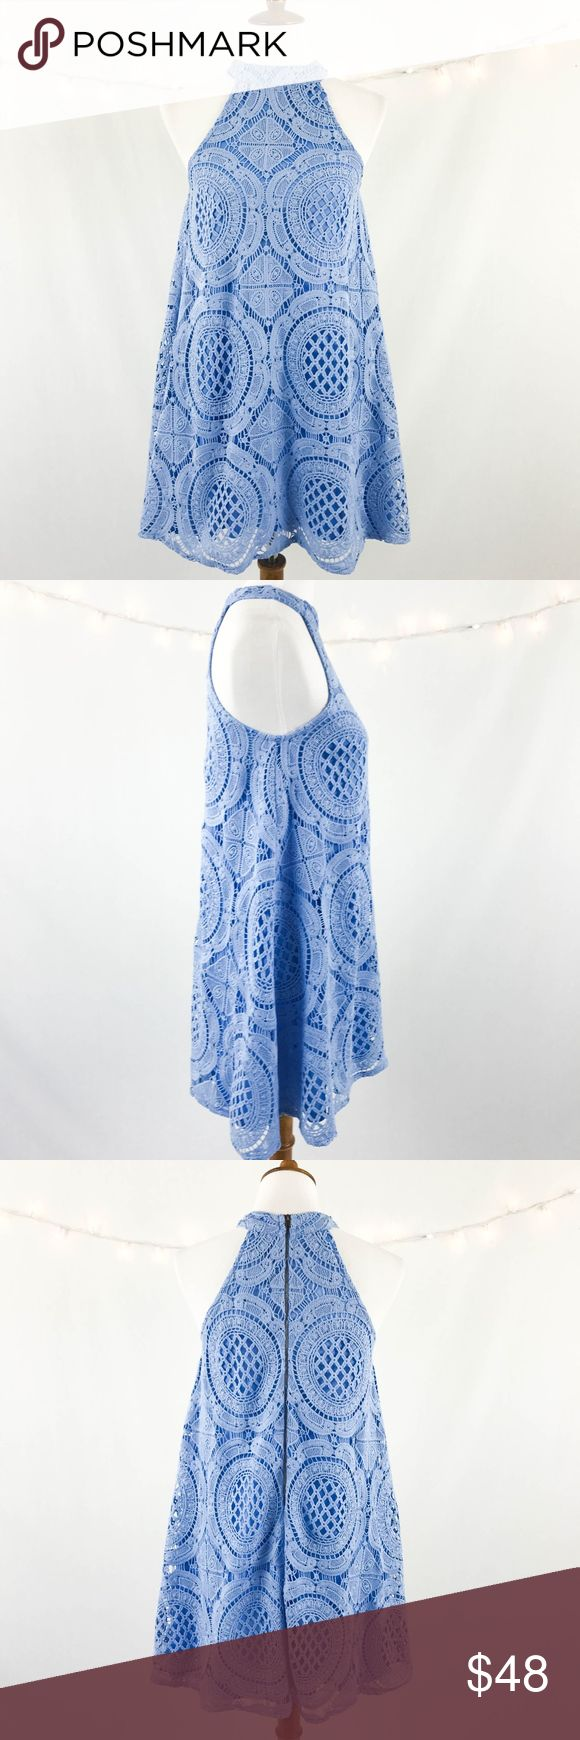 "Judith March Dress Small Periwinkle Crochet A-line Judith March Women's Dress Small Periwinkle Blue Lace Crochet A-line Sleeveless  Type: Dress  Style: A-line  Brand: Judith March  Material: 100% Polyester  Color: Periwinkle Blue  Measurements: Length: 35"" Bust: 18""   Condition: No snags, pilling, or stains.  Country of Manufacturer: China Judith March Dresses"